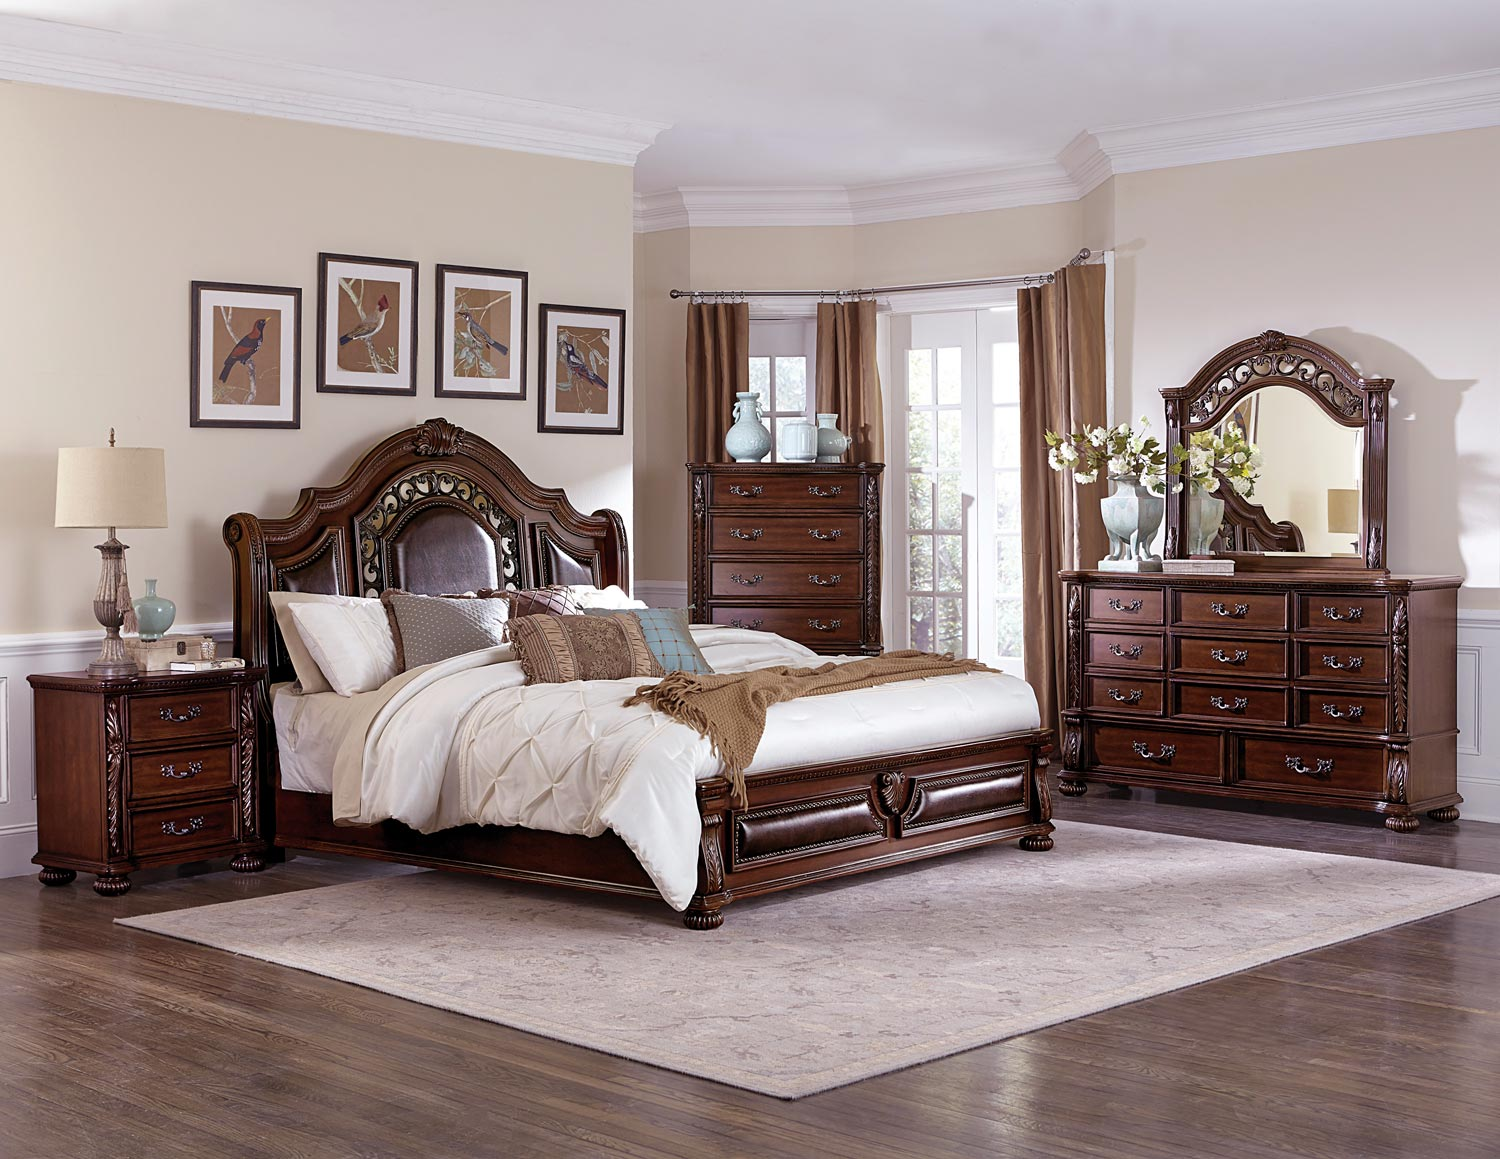 Homelegance Augustine Court Sleigh Upholstered Bedroom Set - Rich Brown Cherry